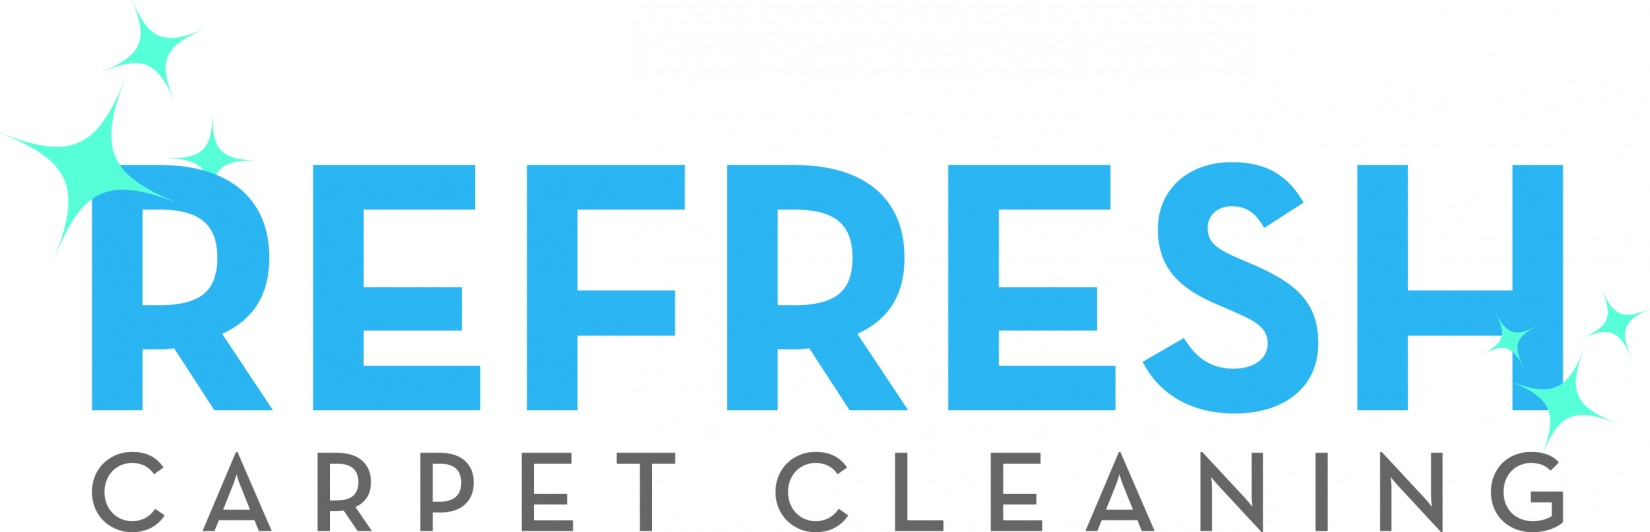 Refresh Carpet Cleaning Font